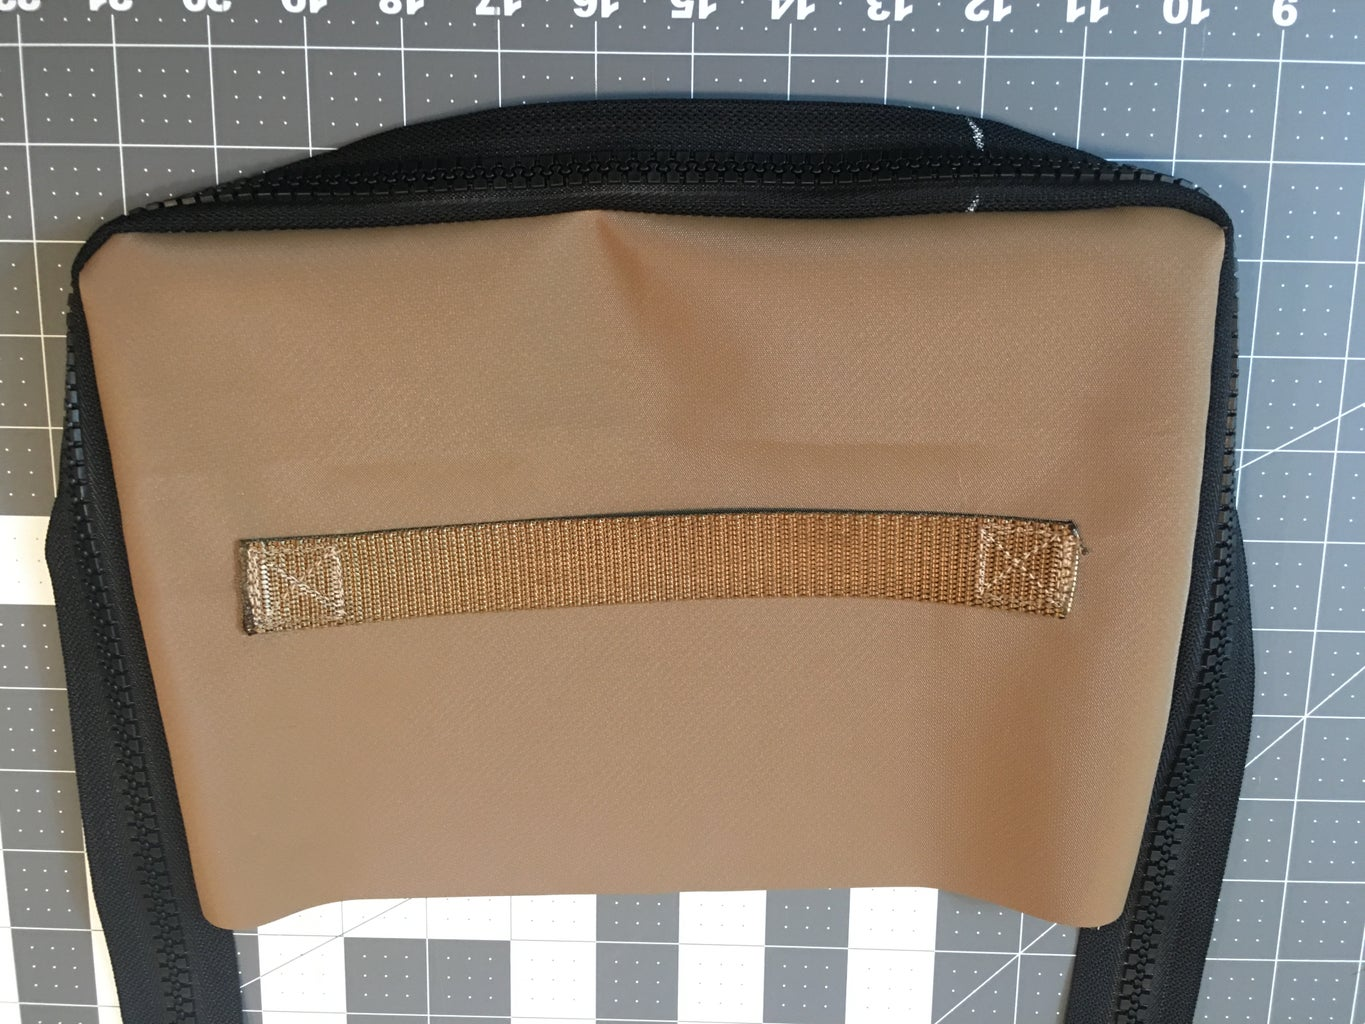 Sewing on the Zipper to the Top: